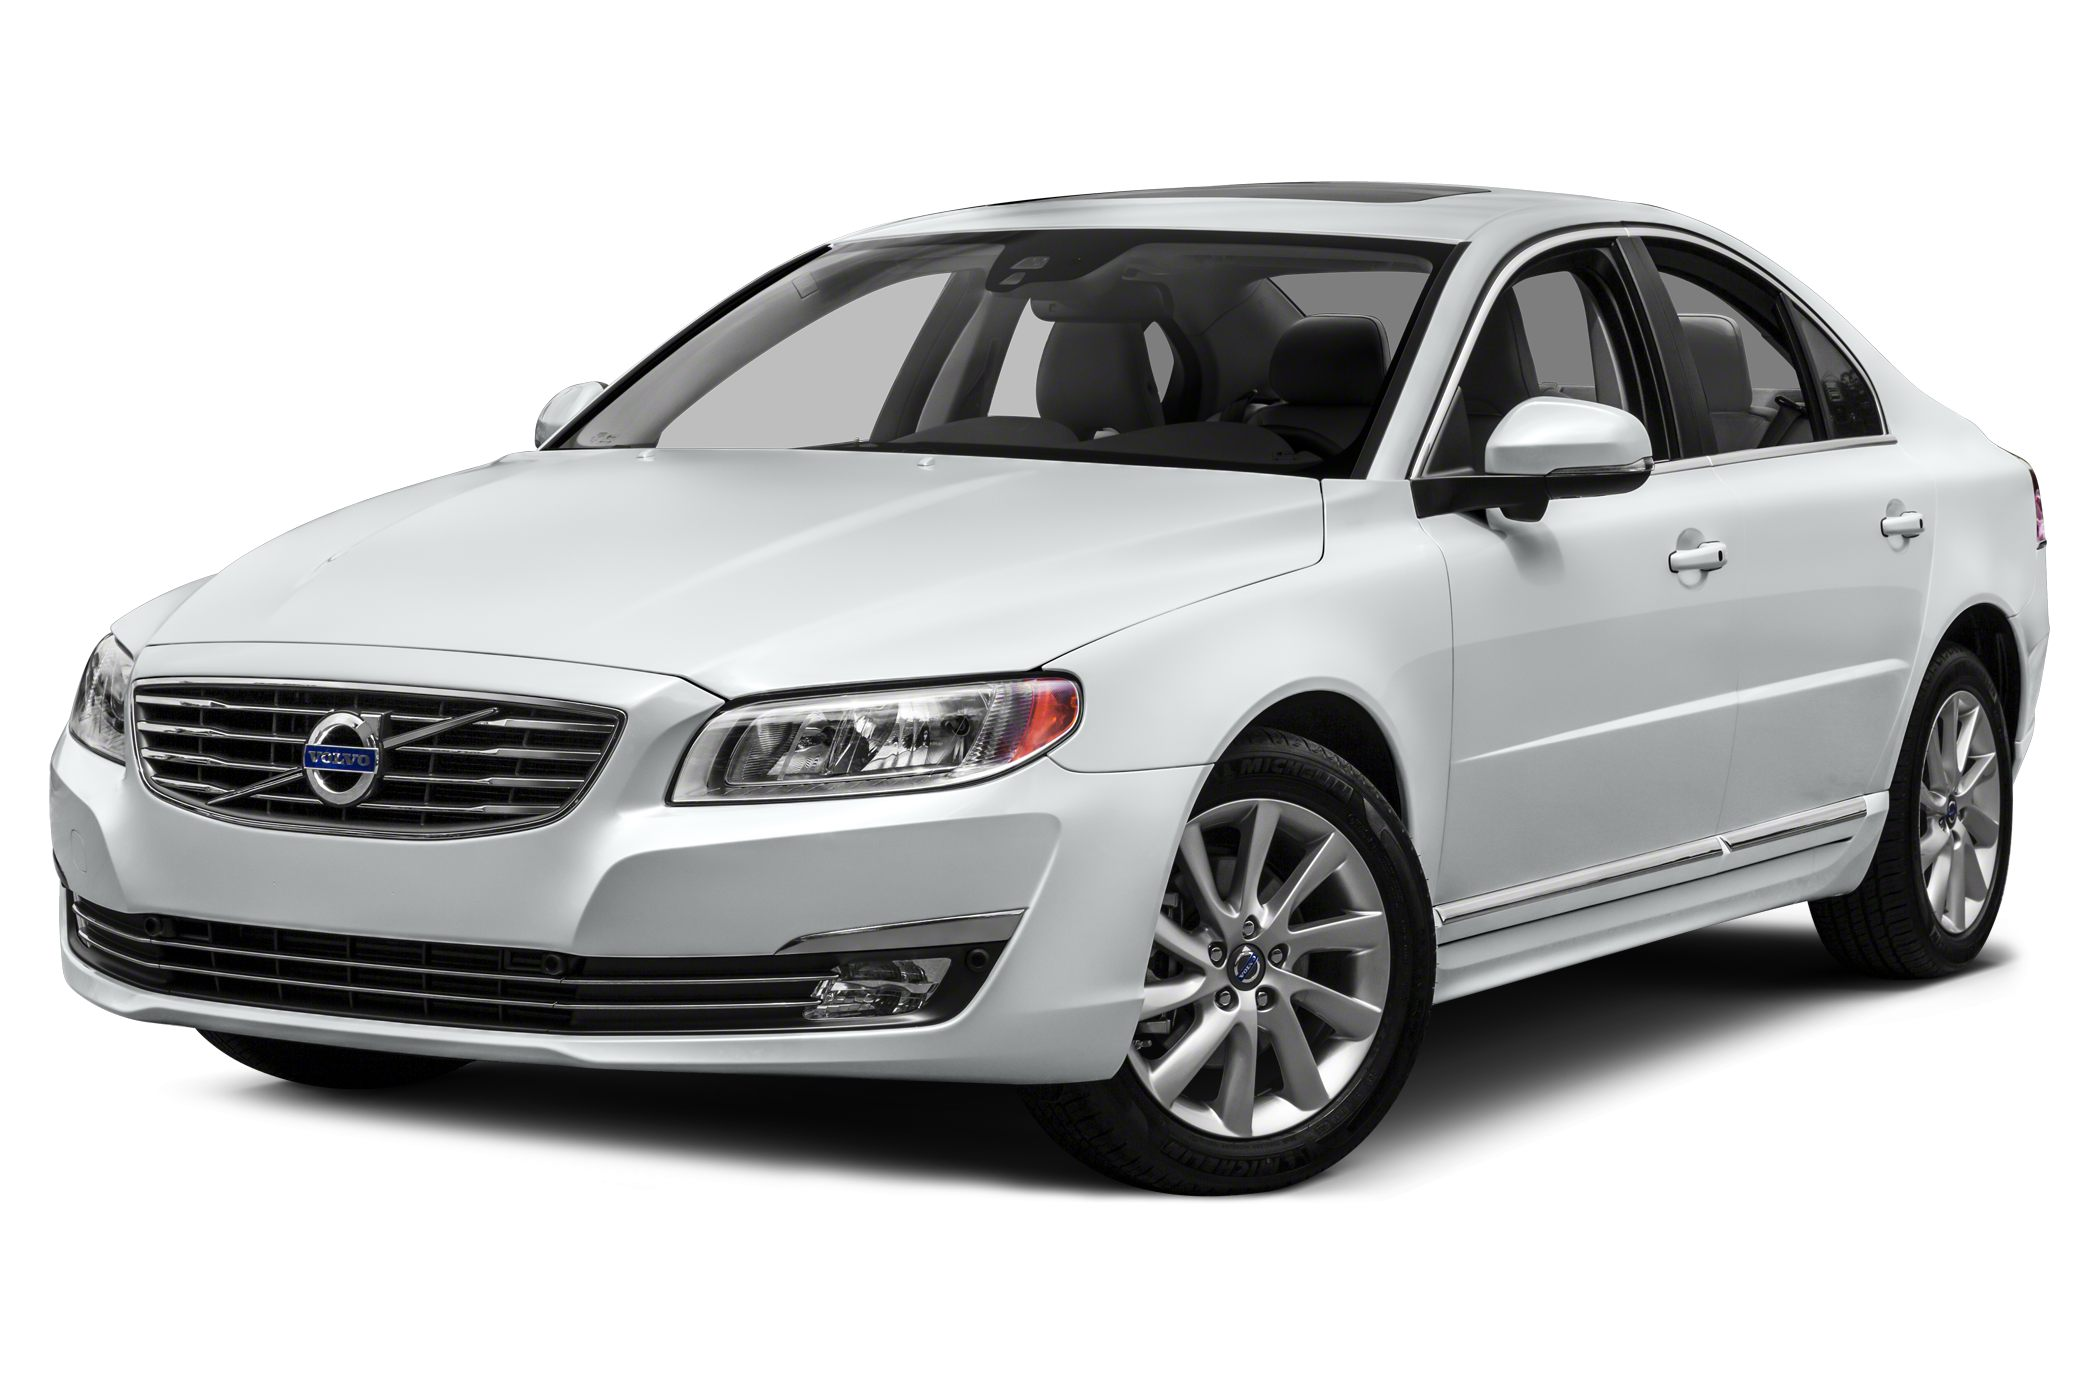 volvo s80 news photos and buying information   autoblog